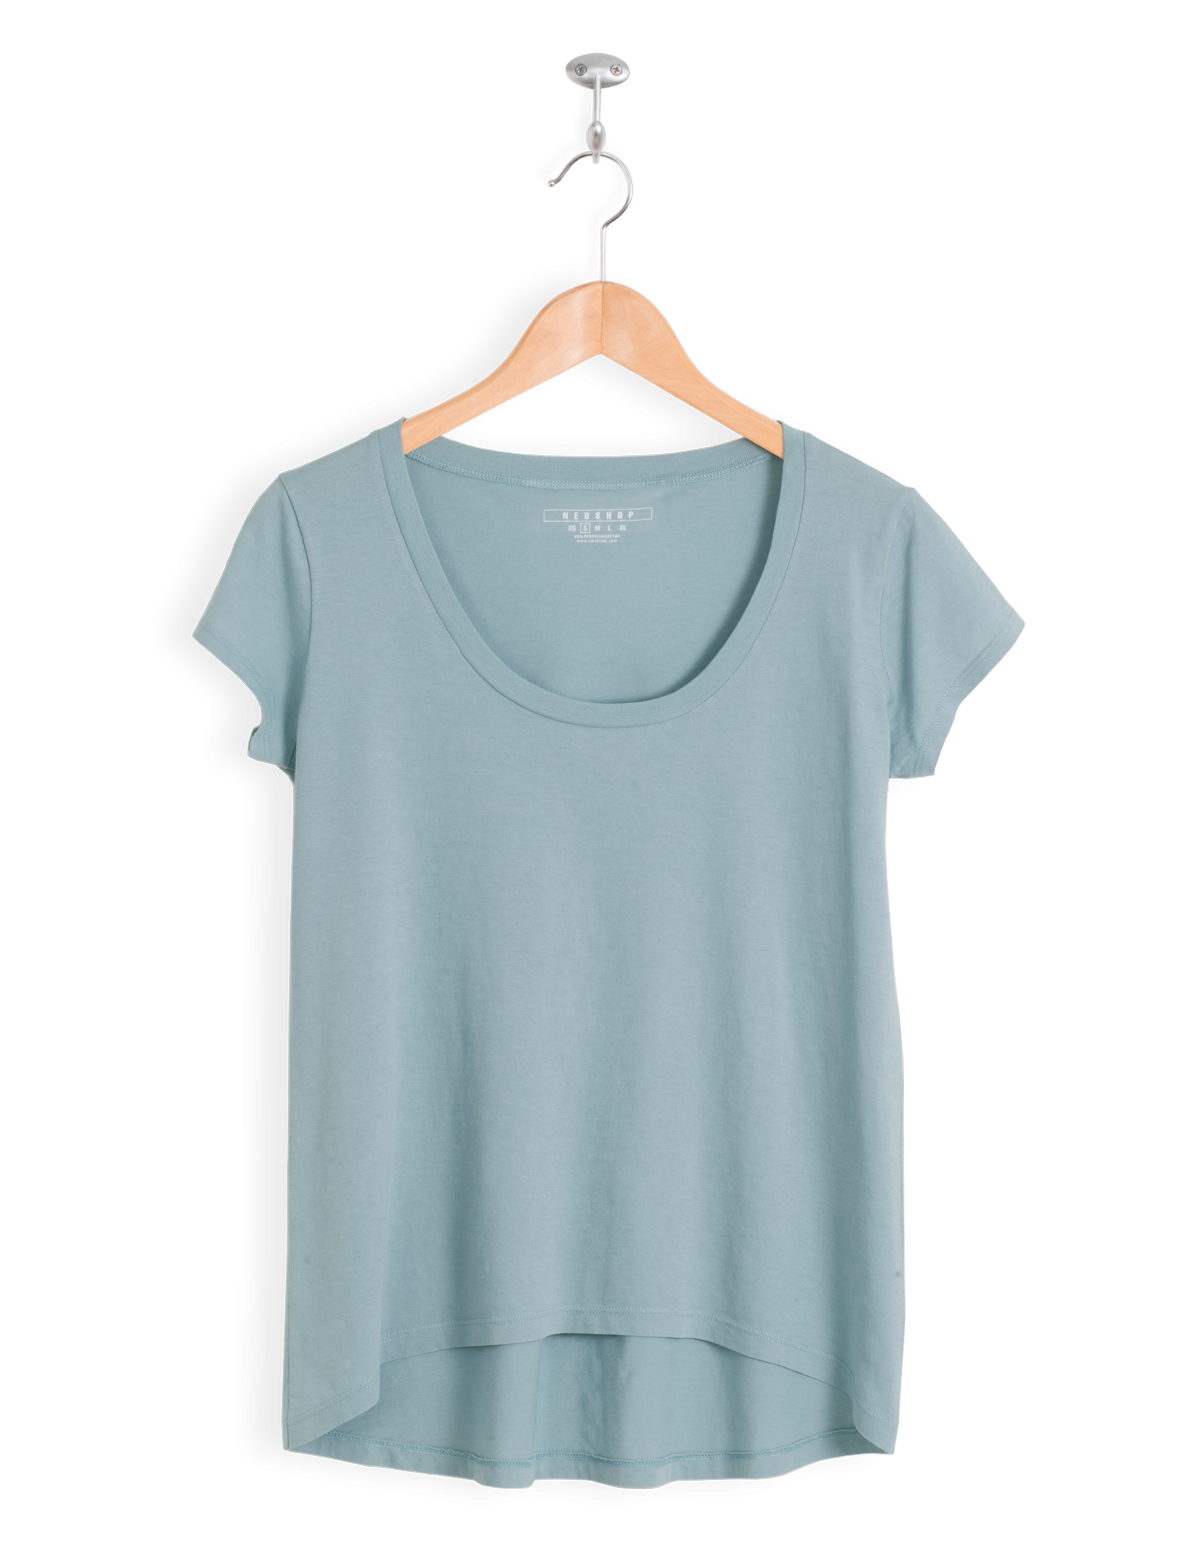 Neushop Women Tops Oxides Gugelot